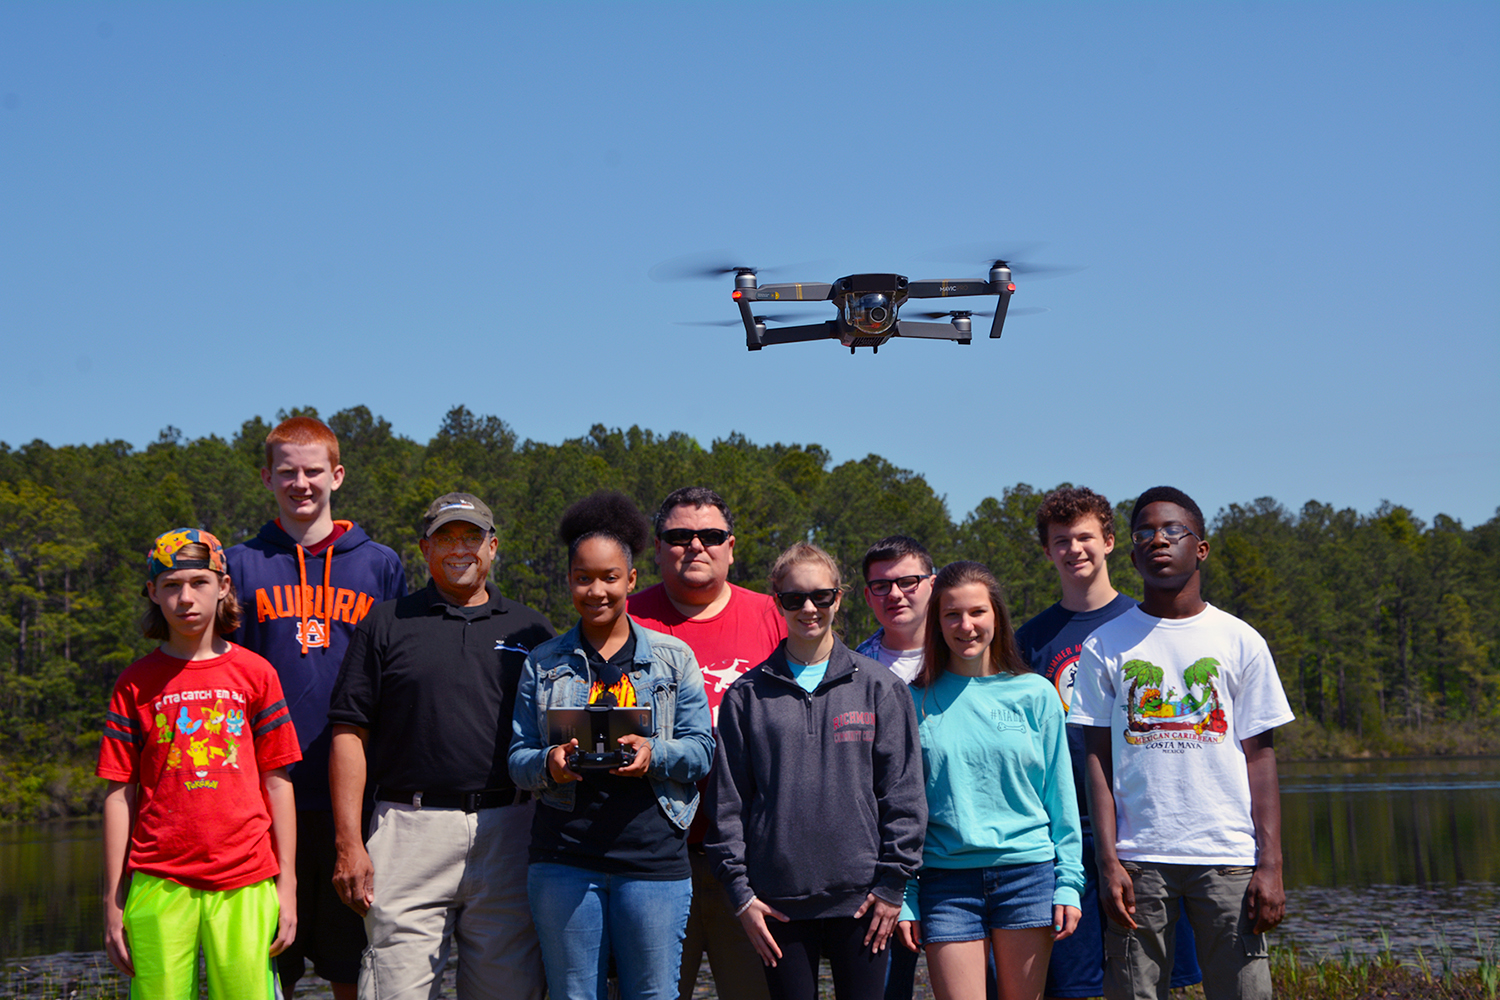 The Drone Academy students and instructors stand by the lake with a drone hovering in front of them.